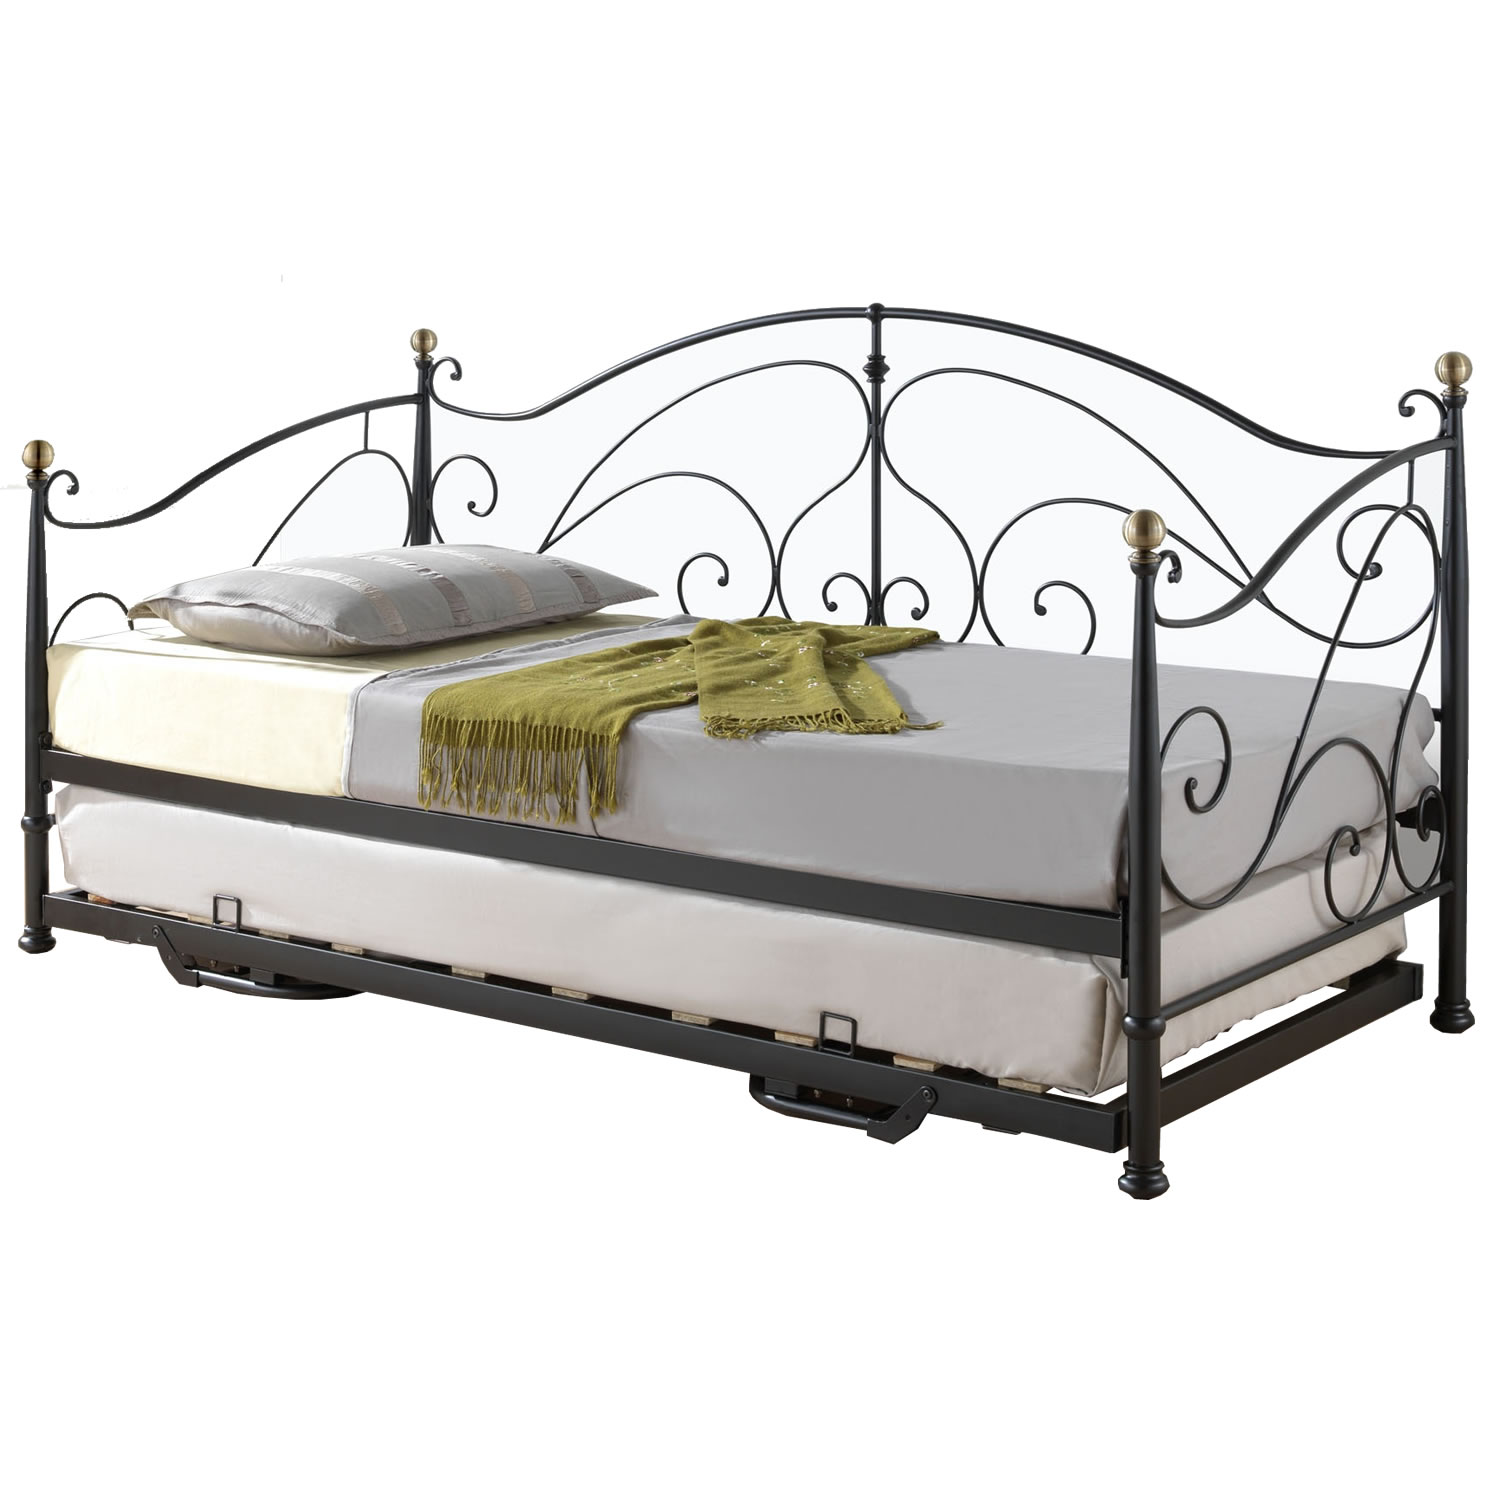 Ikea White Wrought Iron Bed Frame